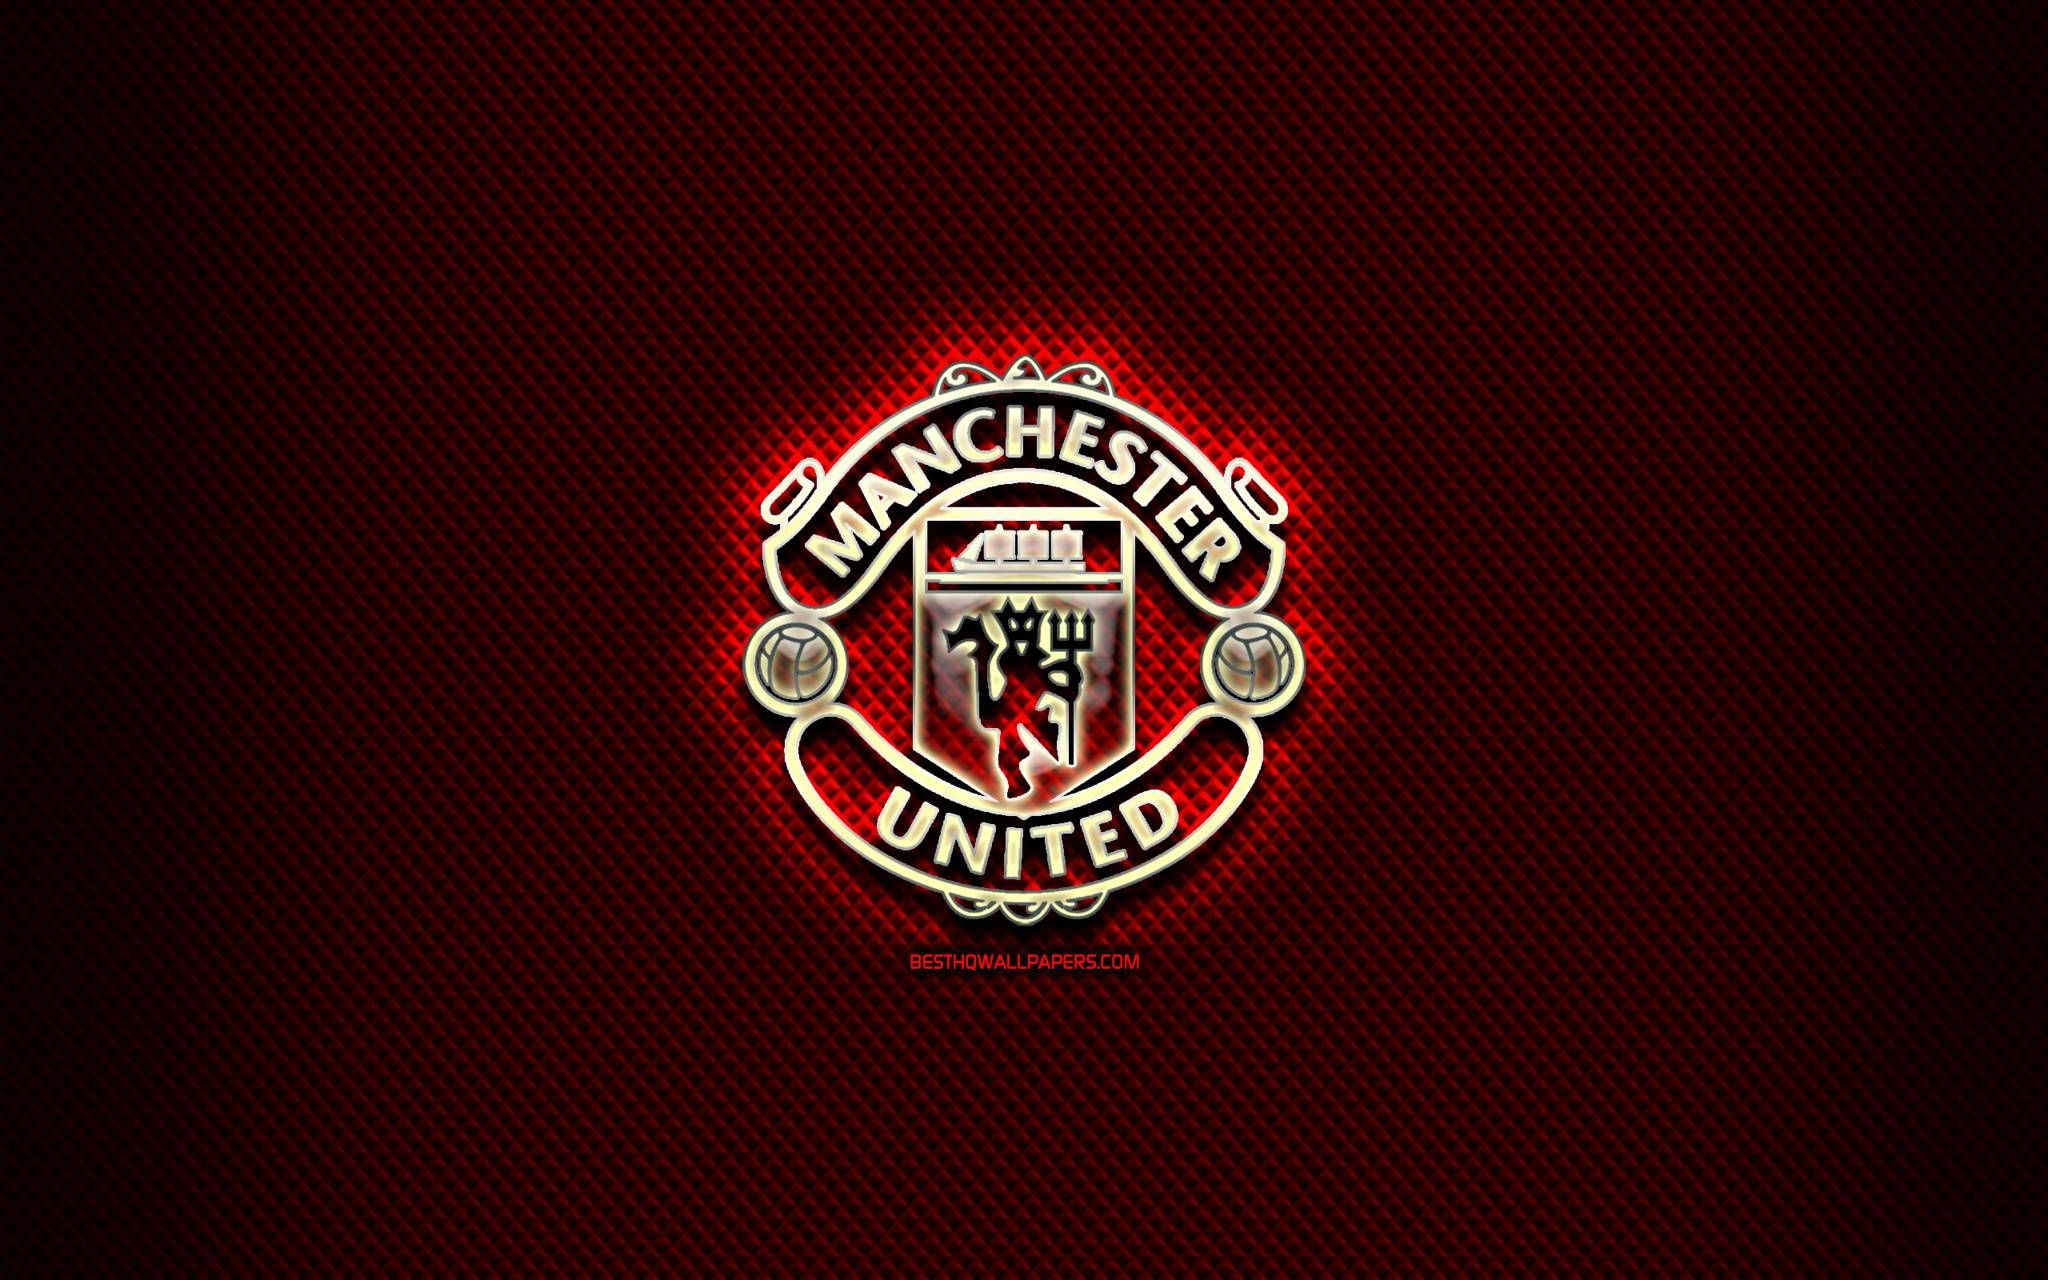 Get Nice Manchester United Wallpapers Phone Download Manchester United FC Wallpaper by ElnazTajaddod - 07 - Free on ZEDGE™ now. Browse millions of popular manchester Wallpapers and Ringtones on Zedge and personalize your phone to suit you. Browse our content now and free your phone